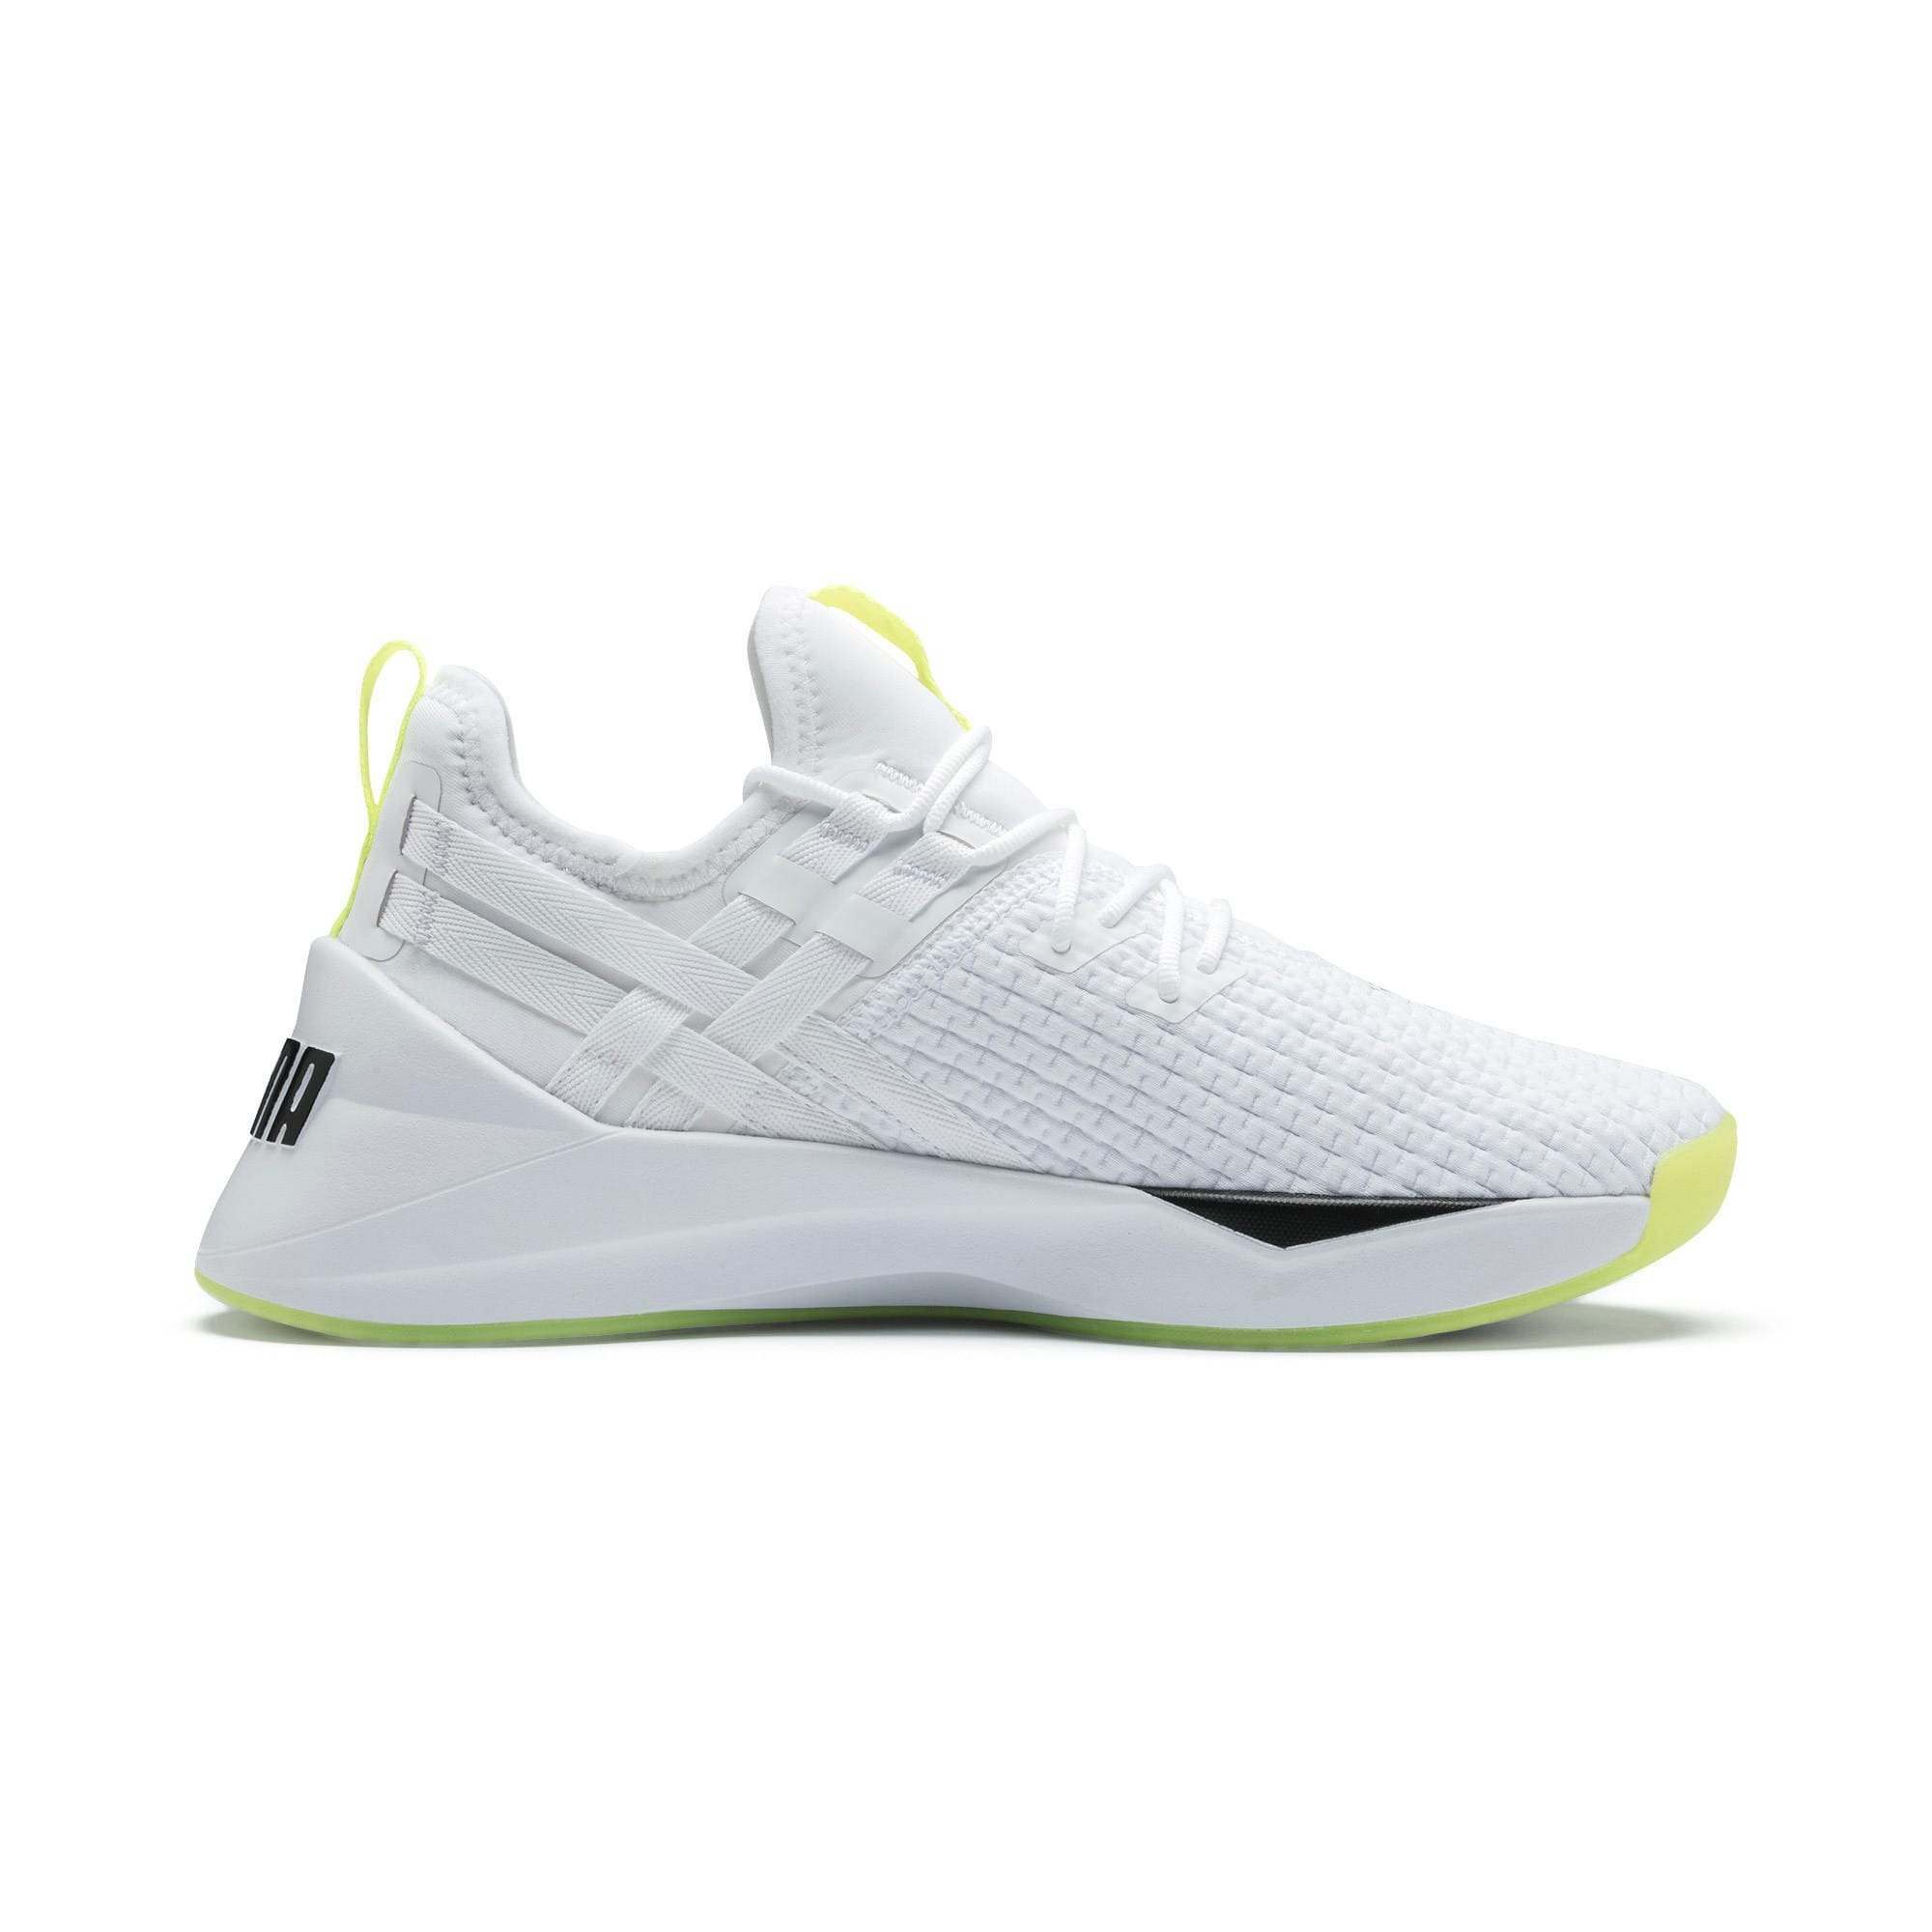 Thumbnail 6 of Jaab XT Damen Trainingsschuhe, Puma White-Yellow Alert, medium